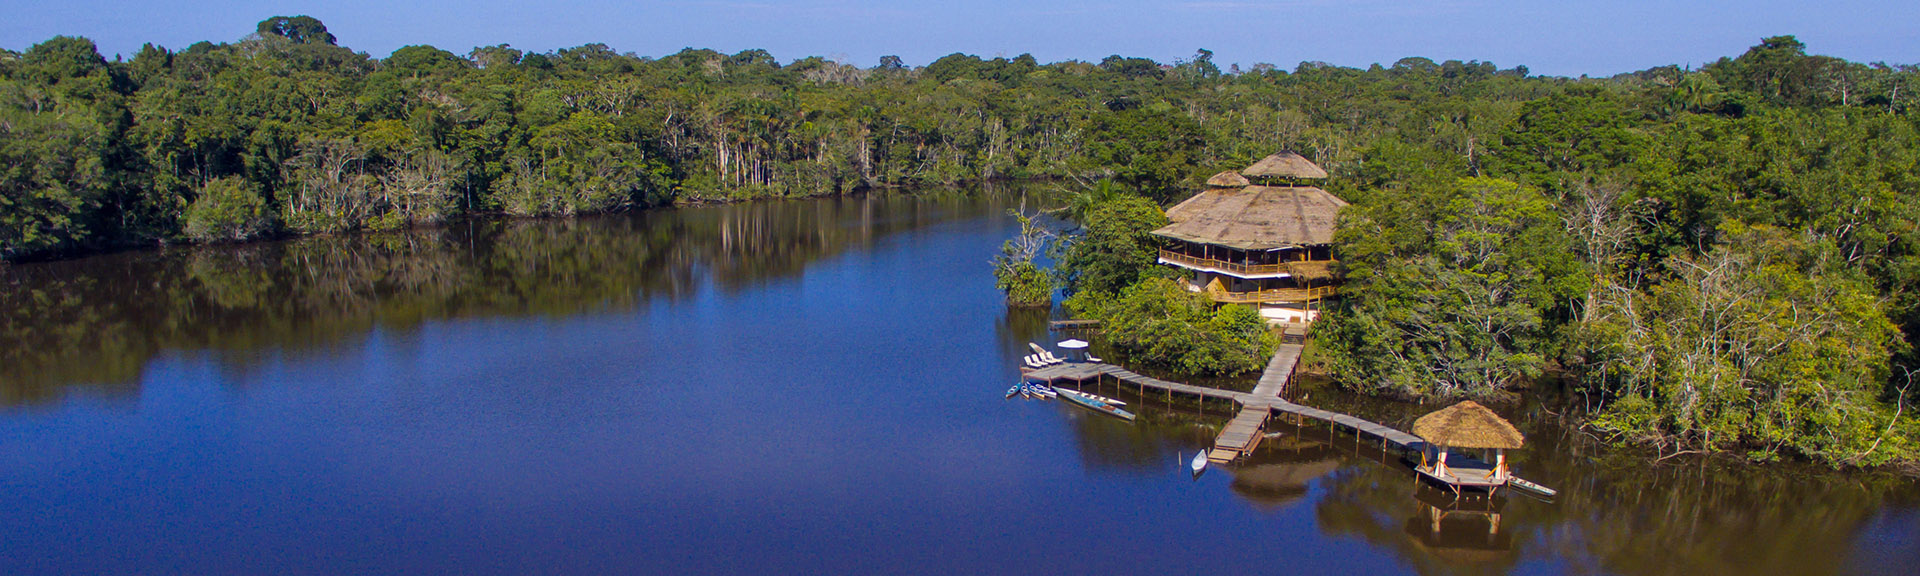 La Selva Jungle Lodge & Spa